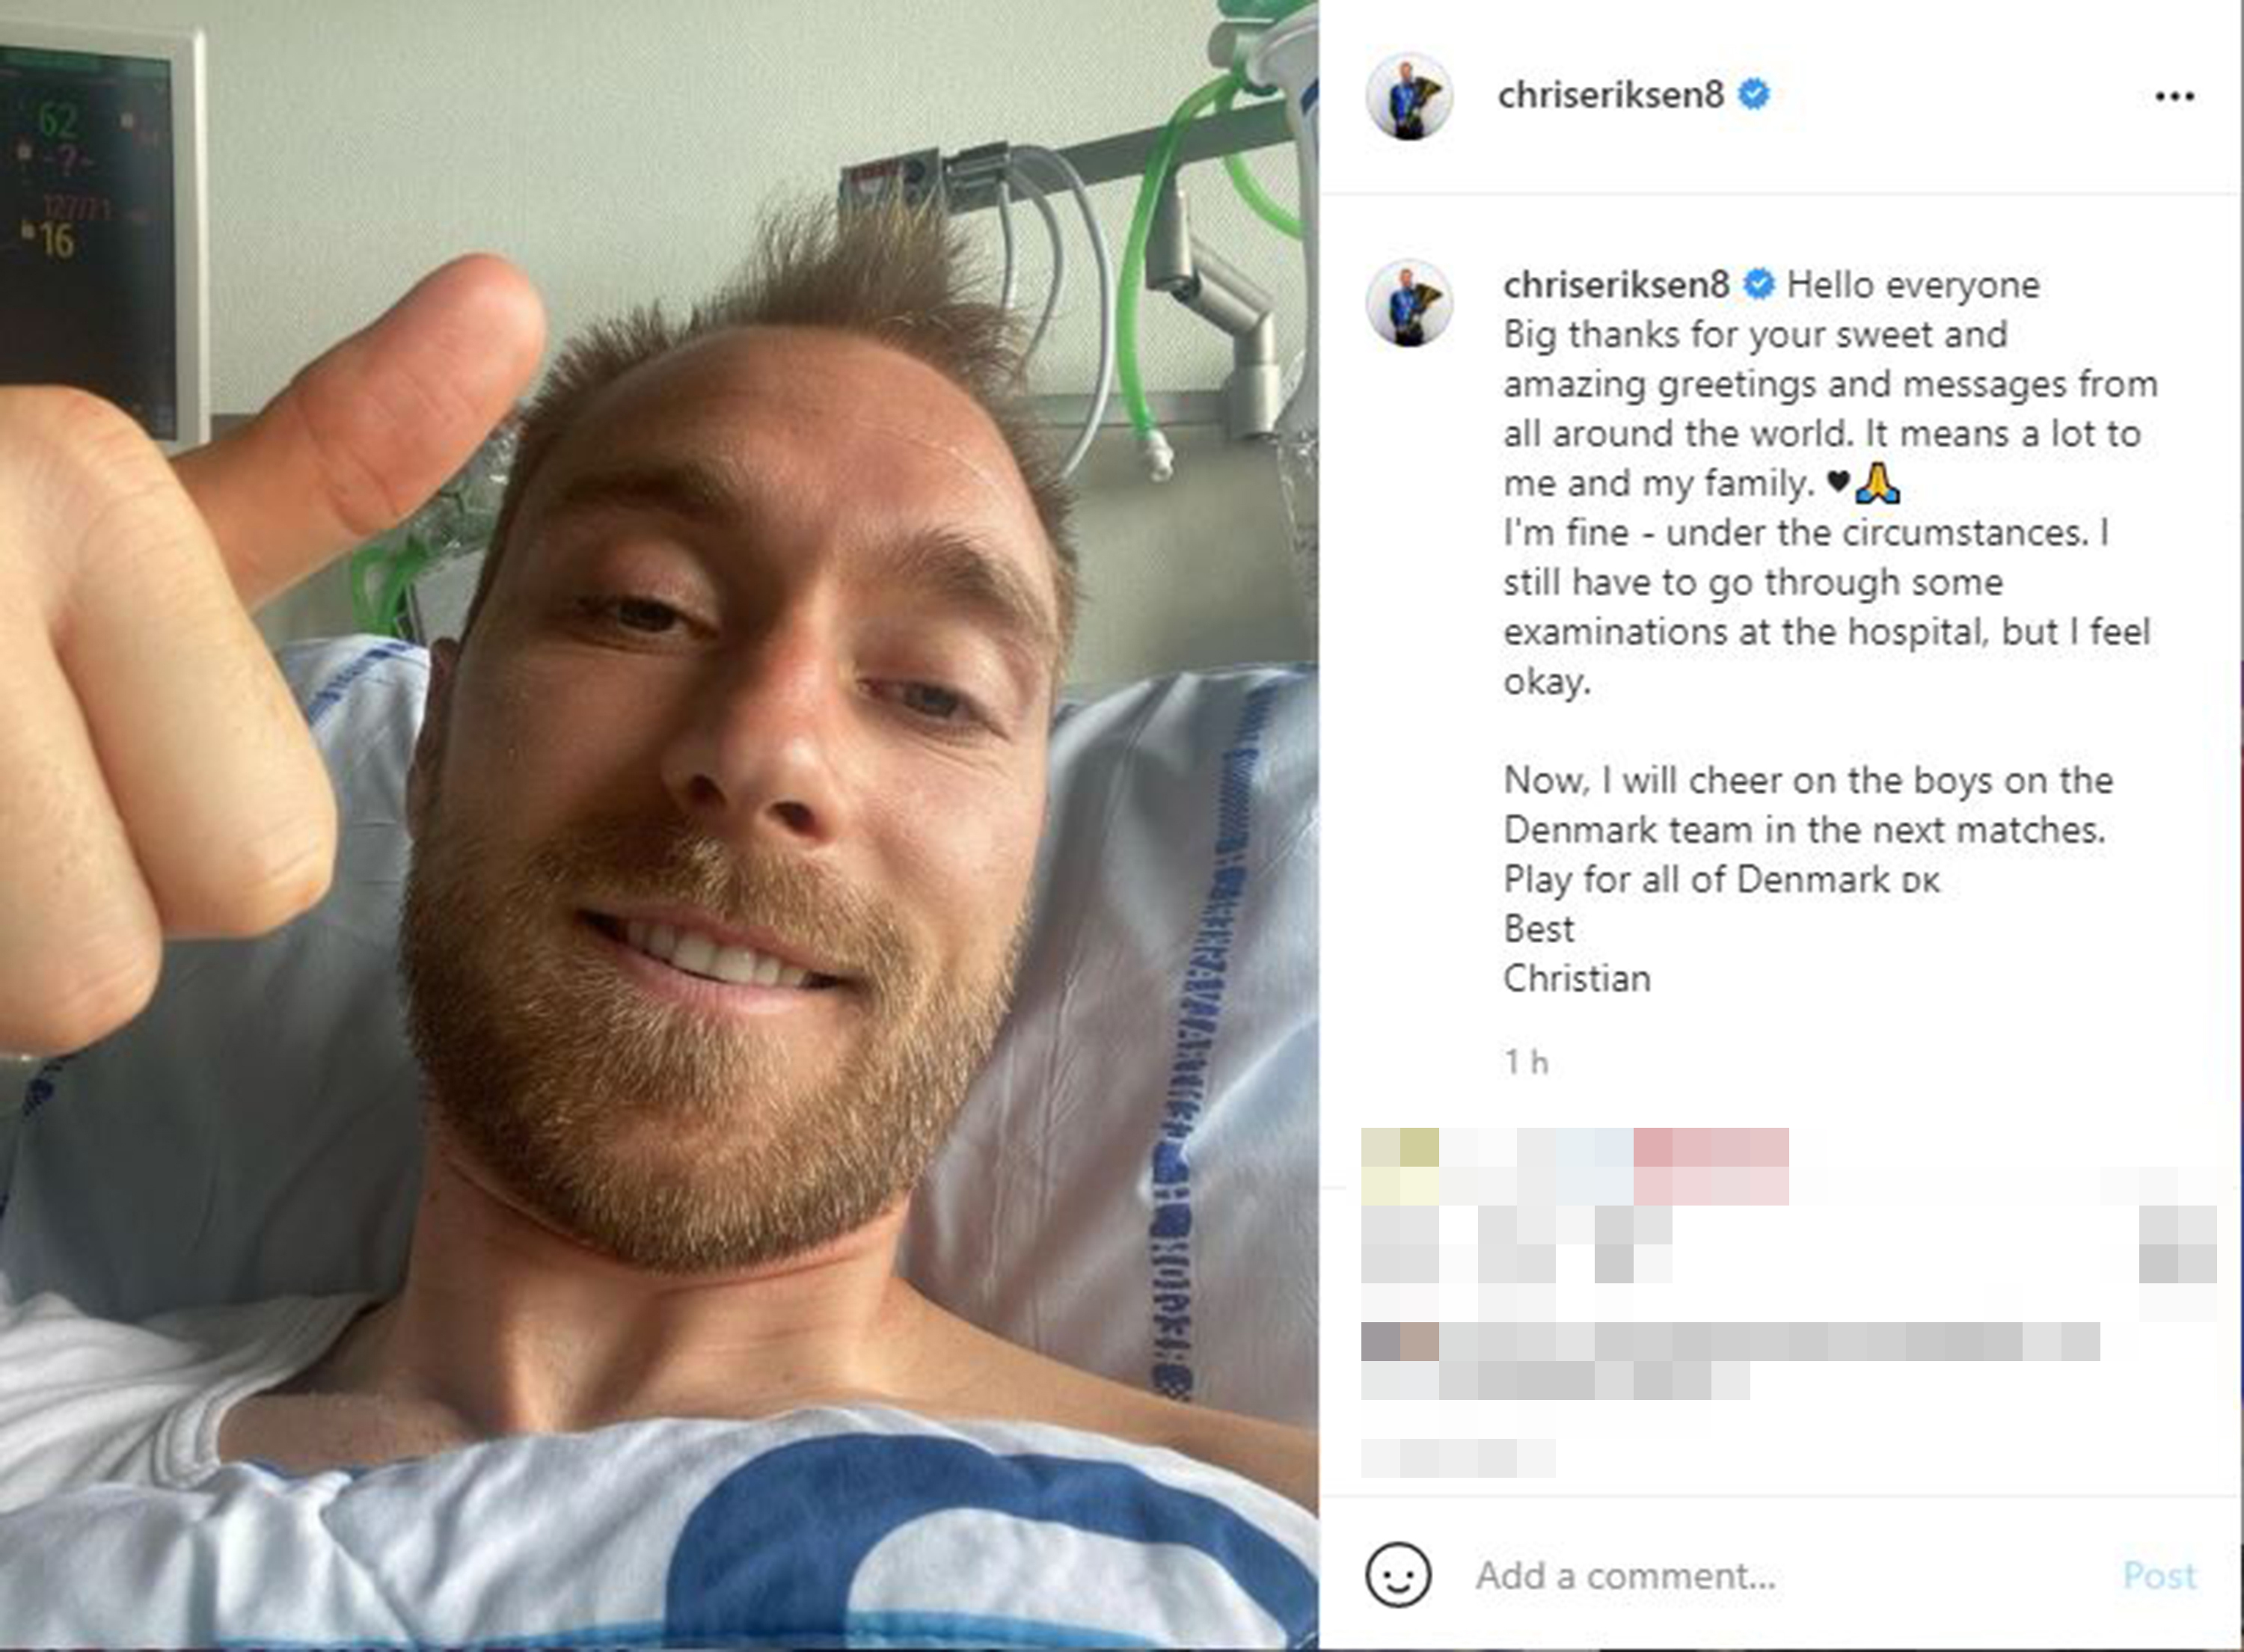 Christian Eriksen (Copyright holder: PA PICTURE DESK Copyright notice: PA Media Usage terms: Picture by: Christian Eriksen/Instagram)